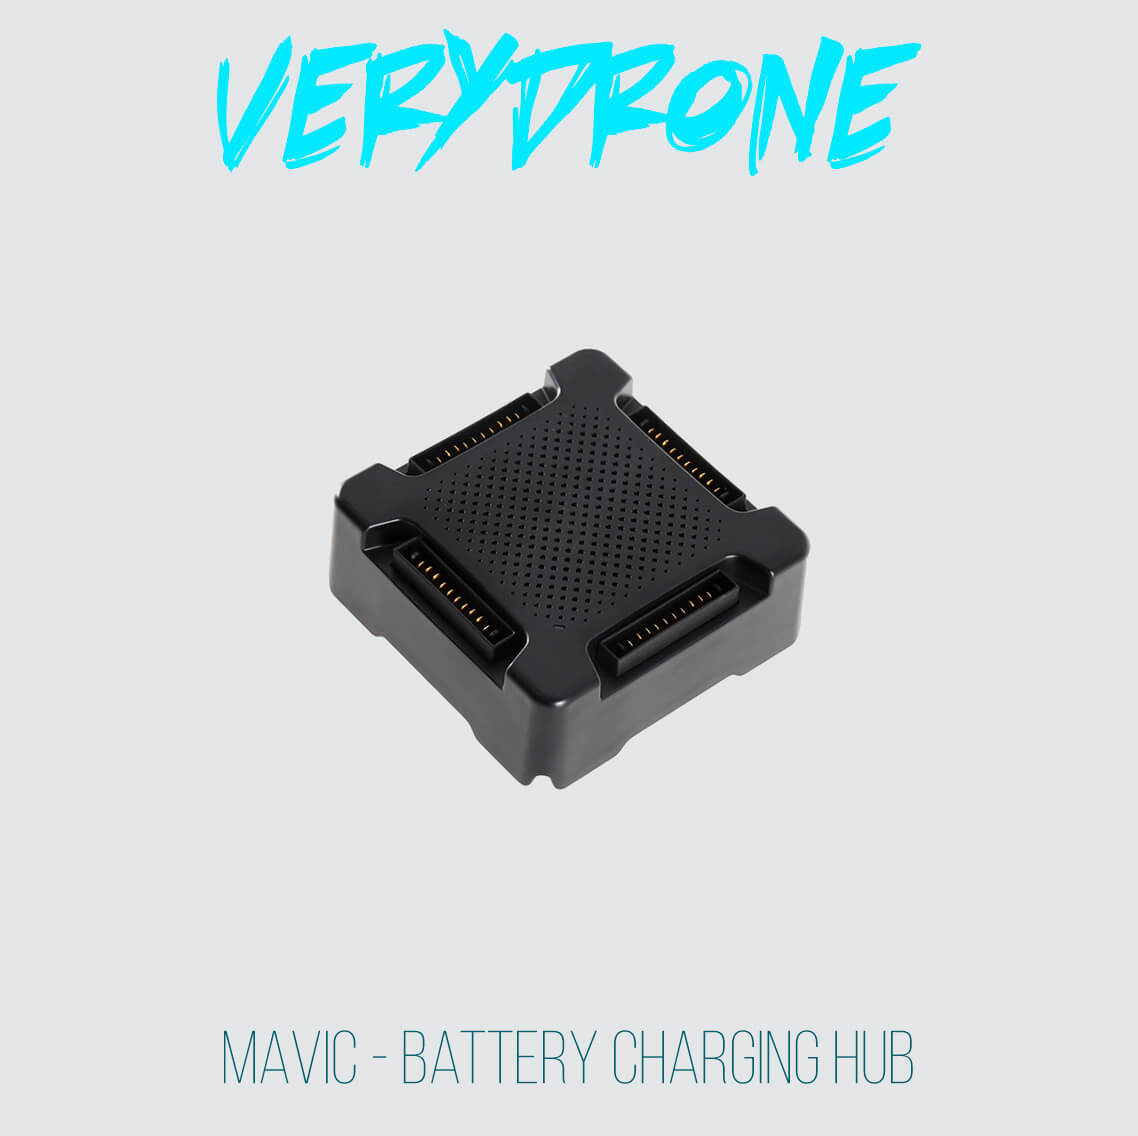 Mavic - Battery Charging Hub